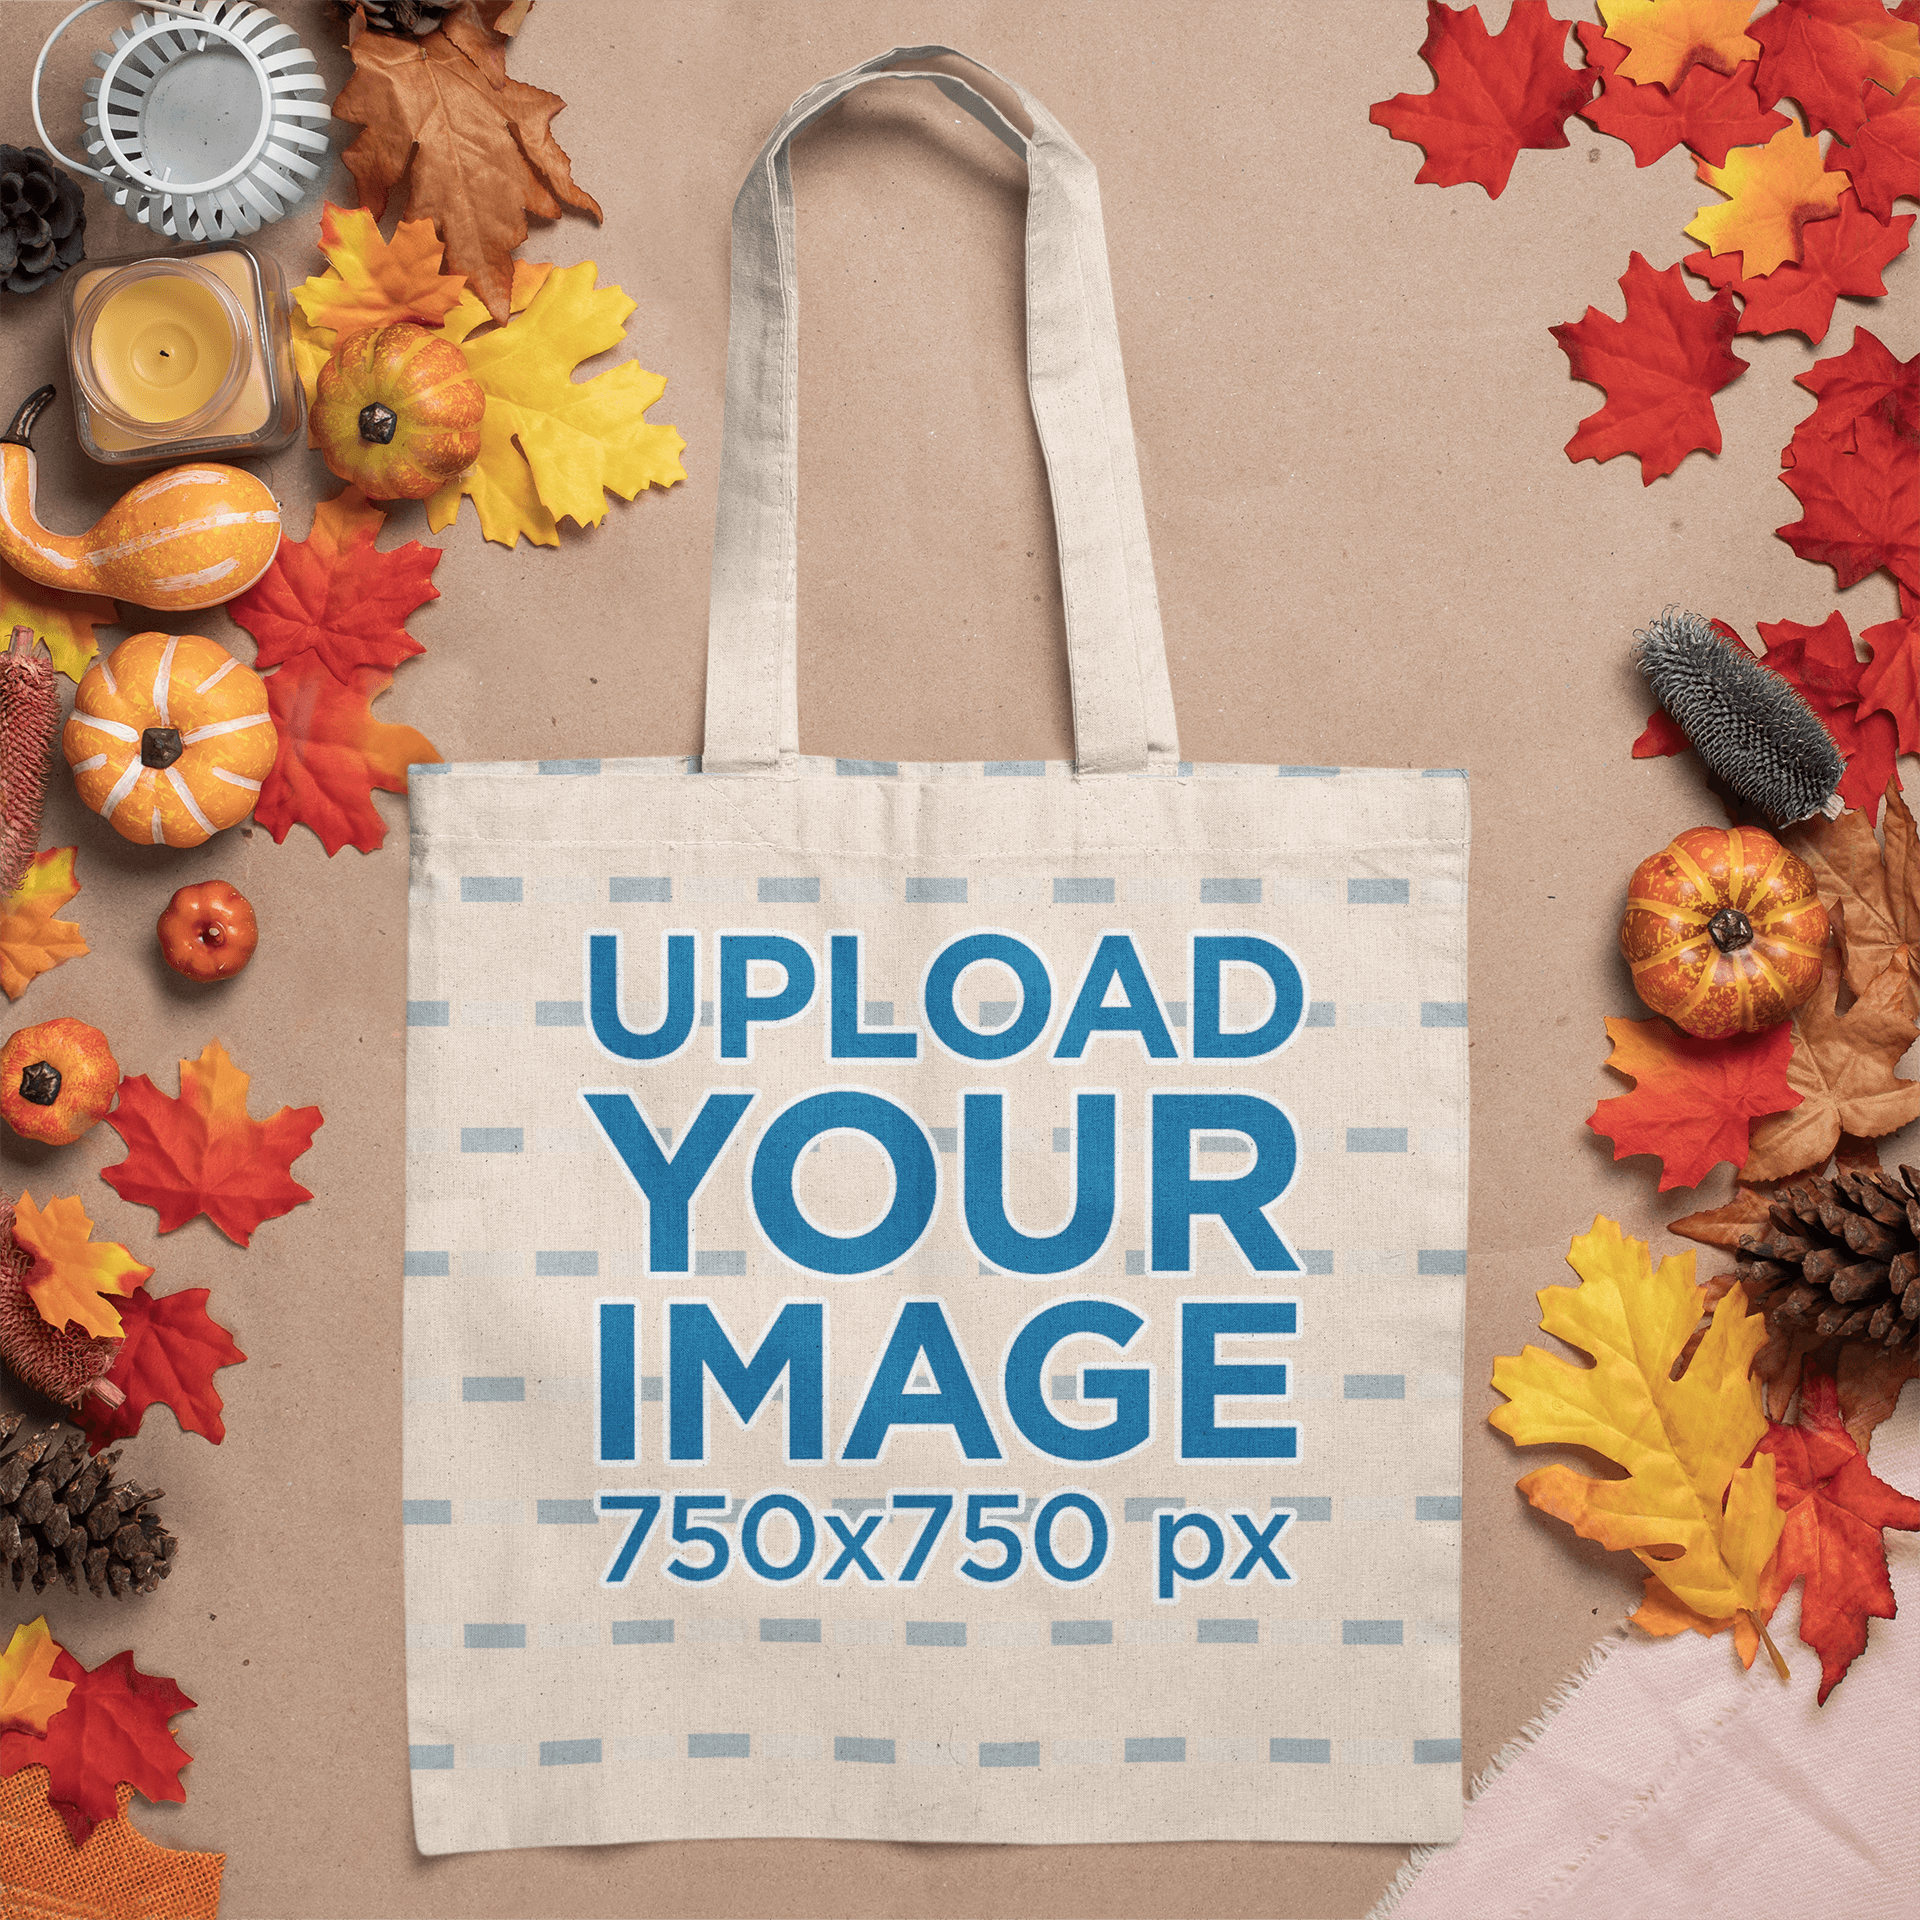 Mockup of a Tote Bag Lying Flat Among Autumn Decorations 50